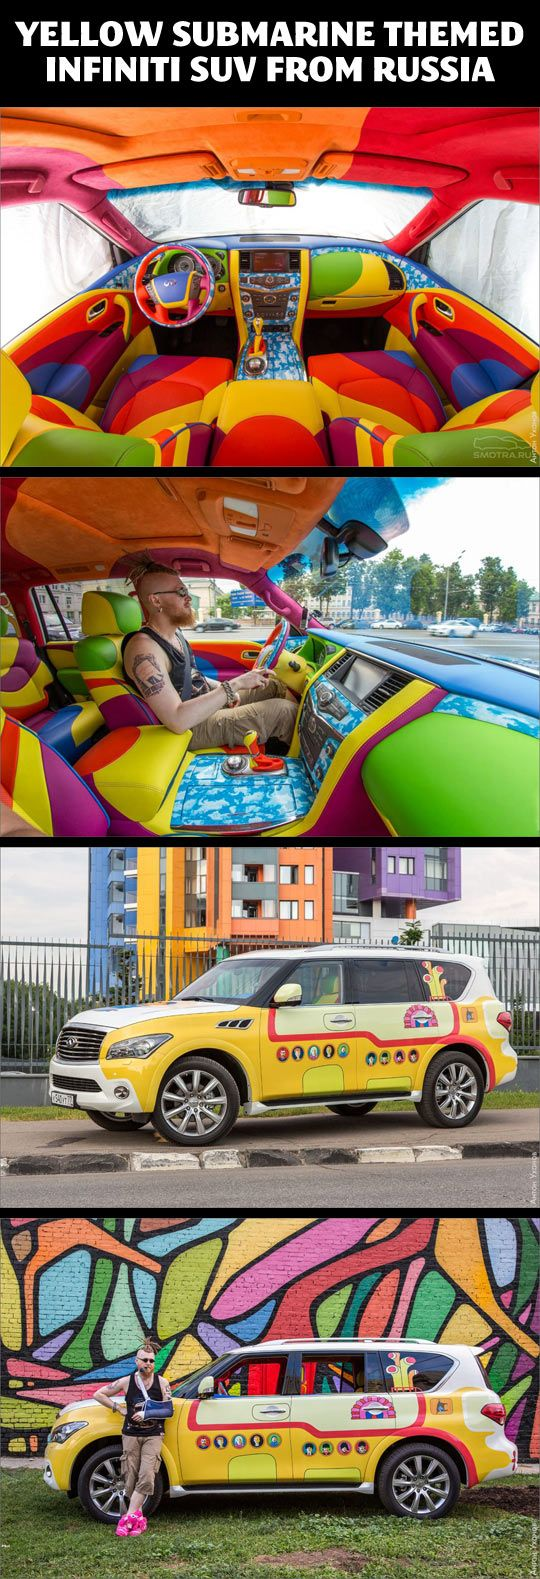 Yellow Submarine themed Infiniti SUV… I don't know where to pin this, so it shall be on the Funny Board.